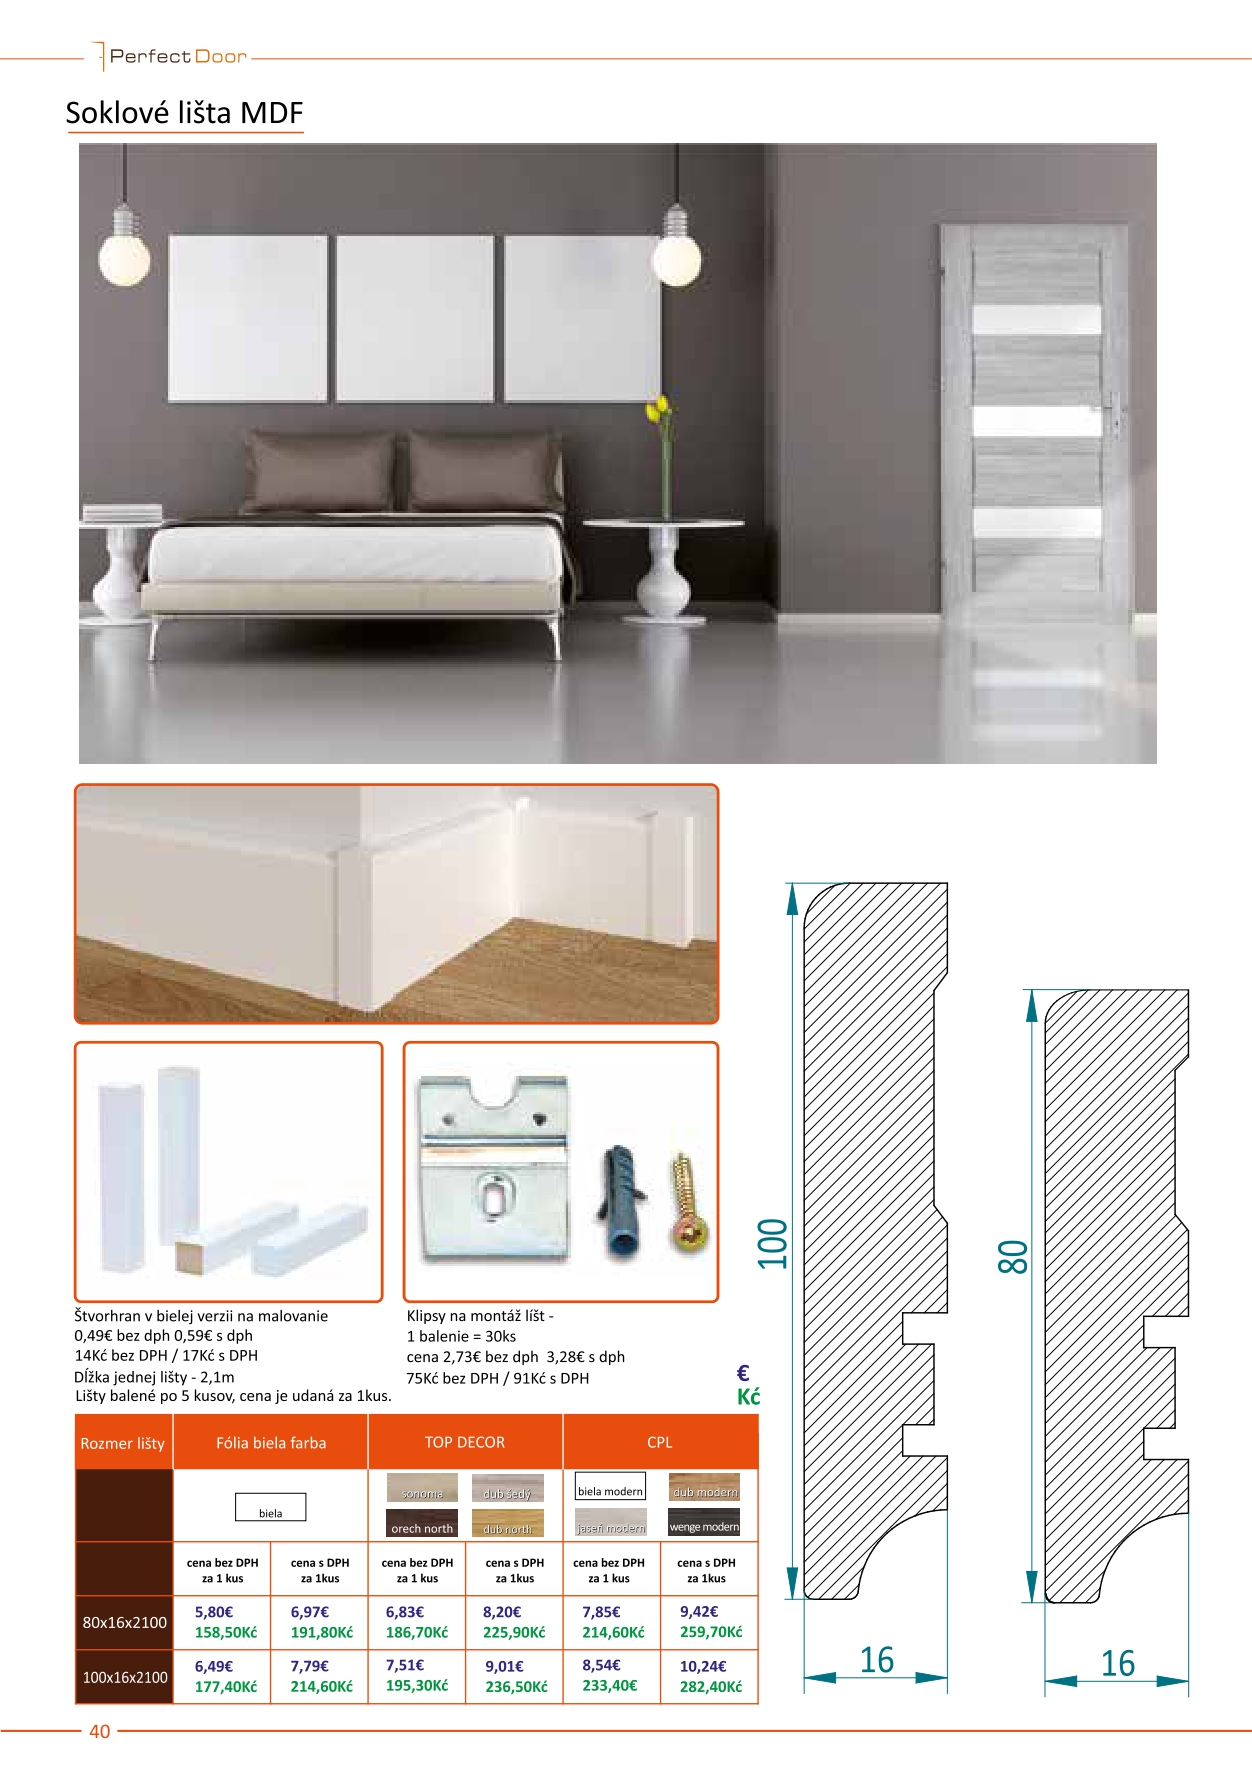 Perfectdoor katalog  1 2019 pages-to-jpg-0040